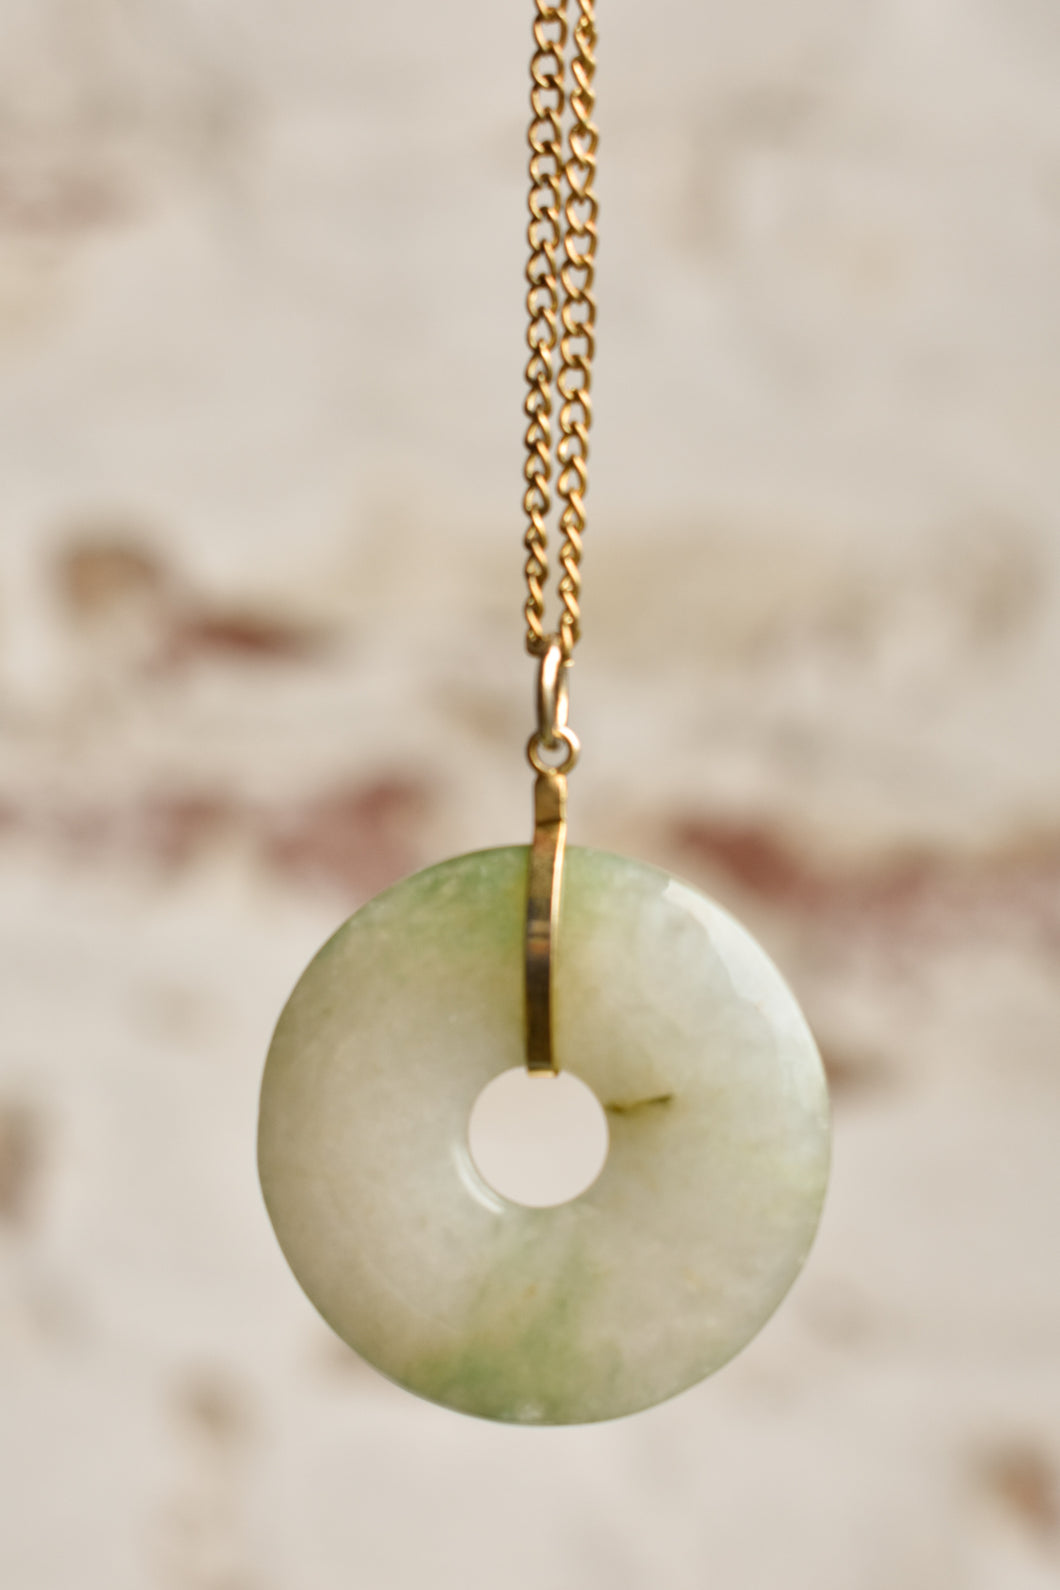 Donut shaped stone pendant with gold coloured chain